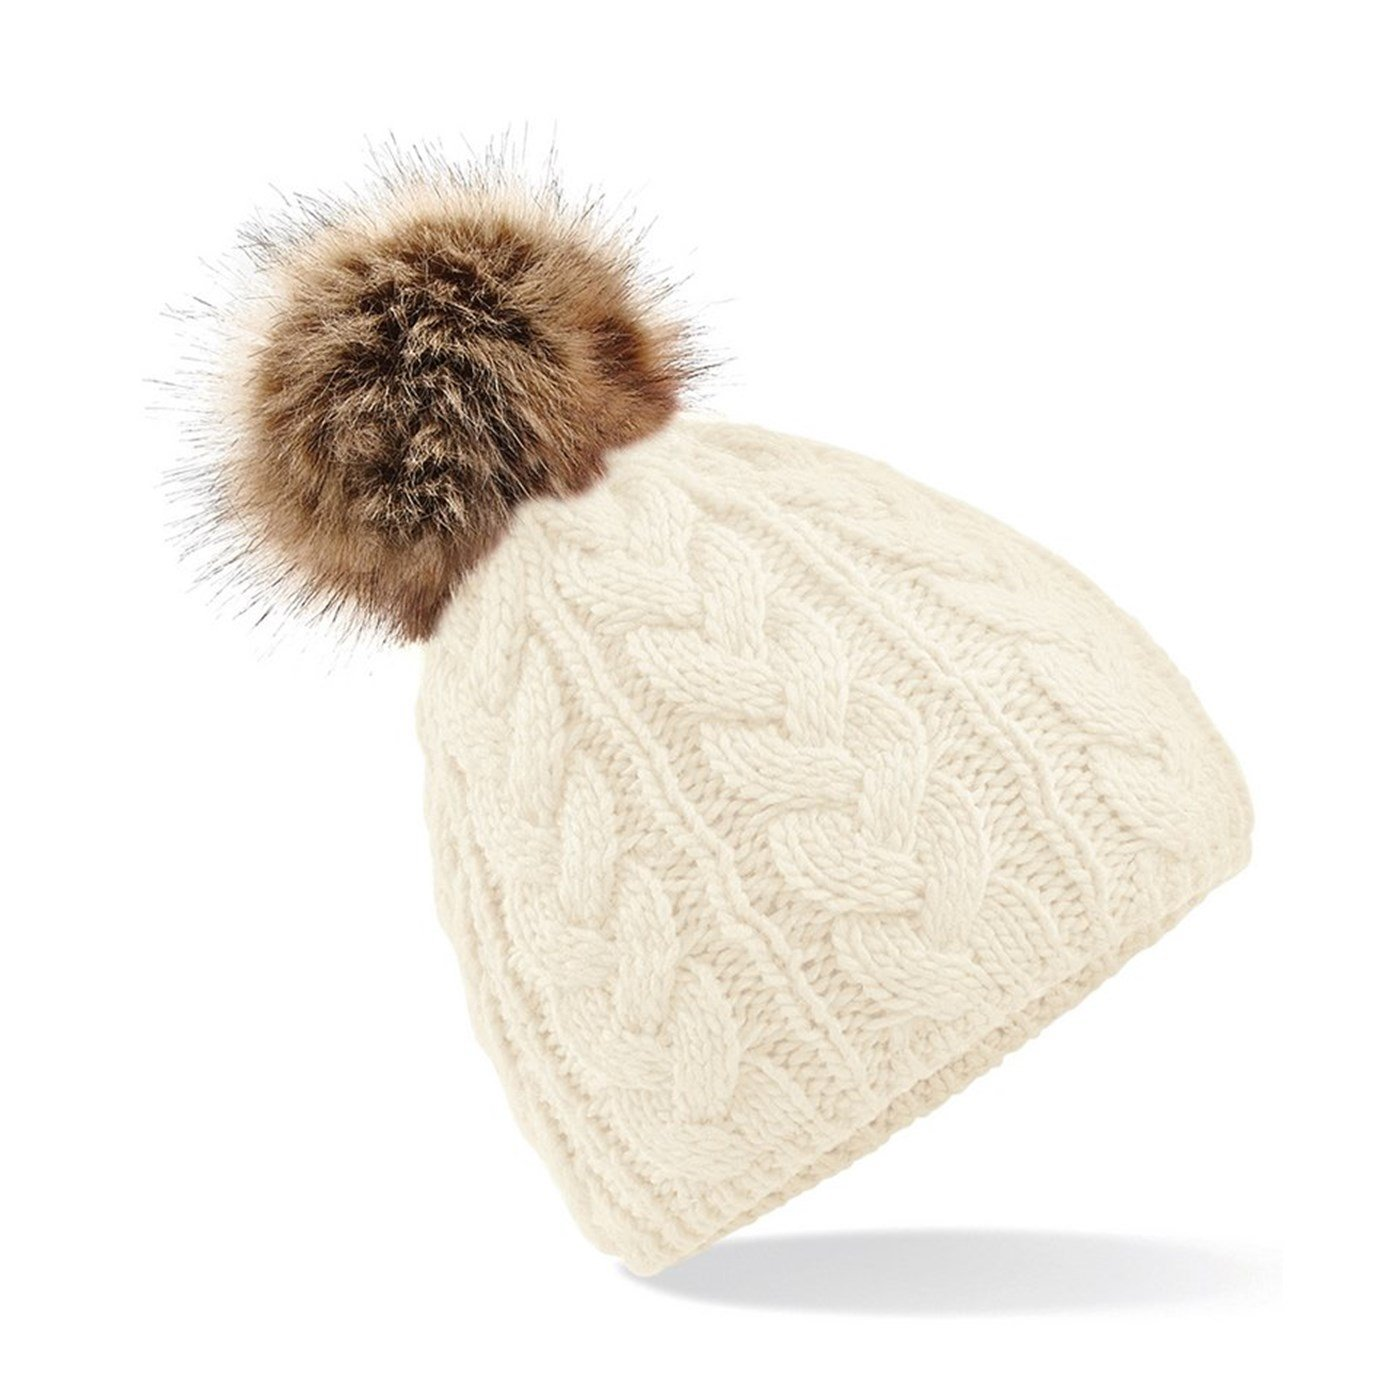 c6fb3b4c38f Beechfield Adult s Fur Pom Pom Cable Knit Beanie Hat